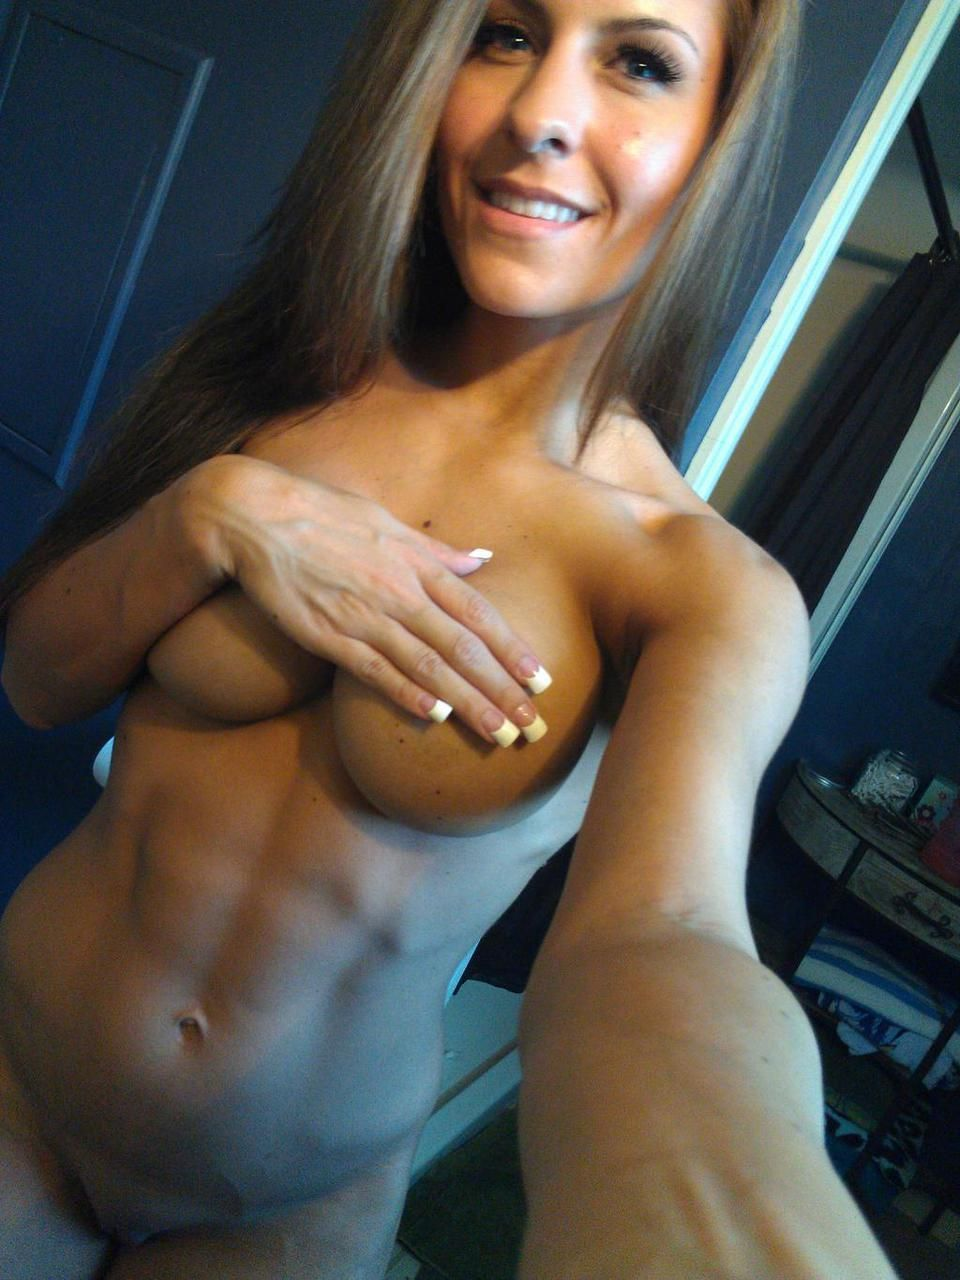 Top 10 Naked Selfies In The Bedroom - Selfie Swiper